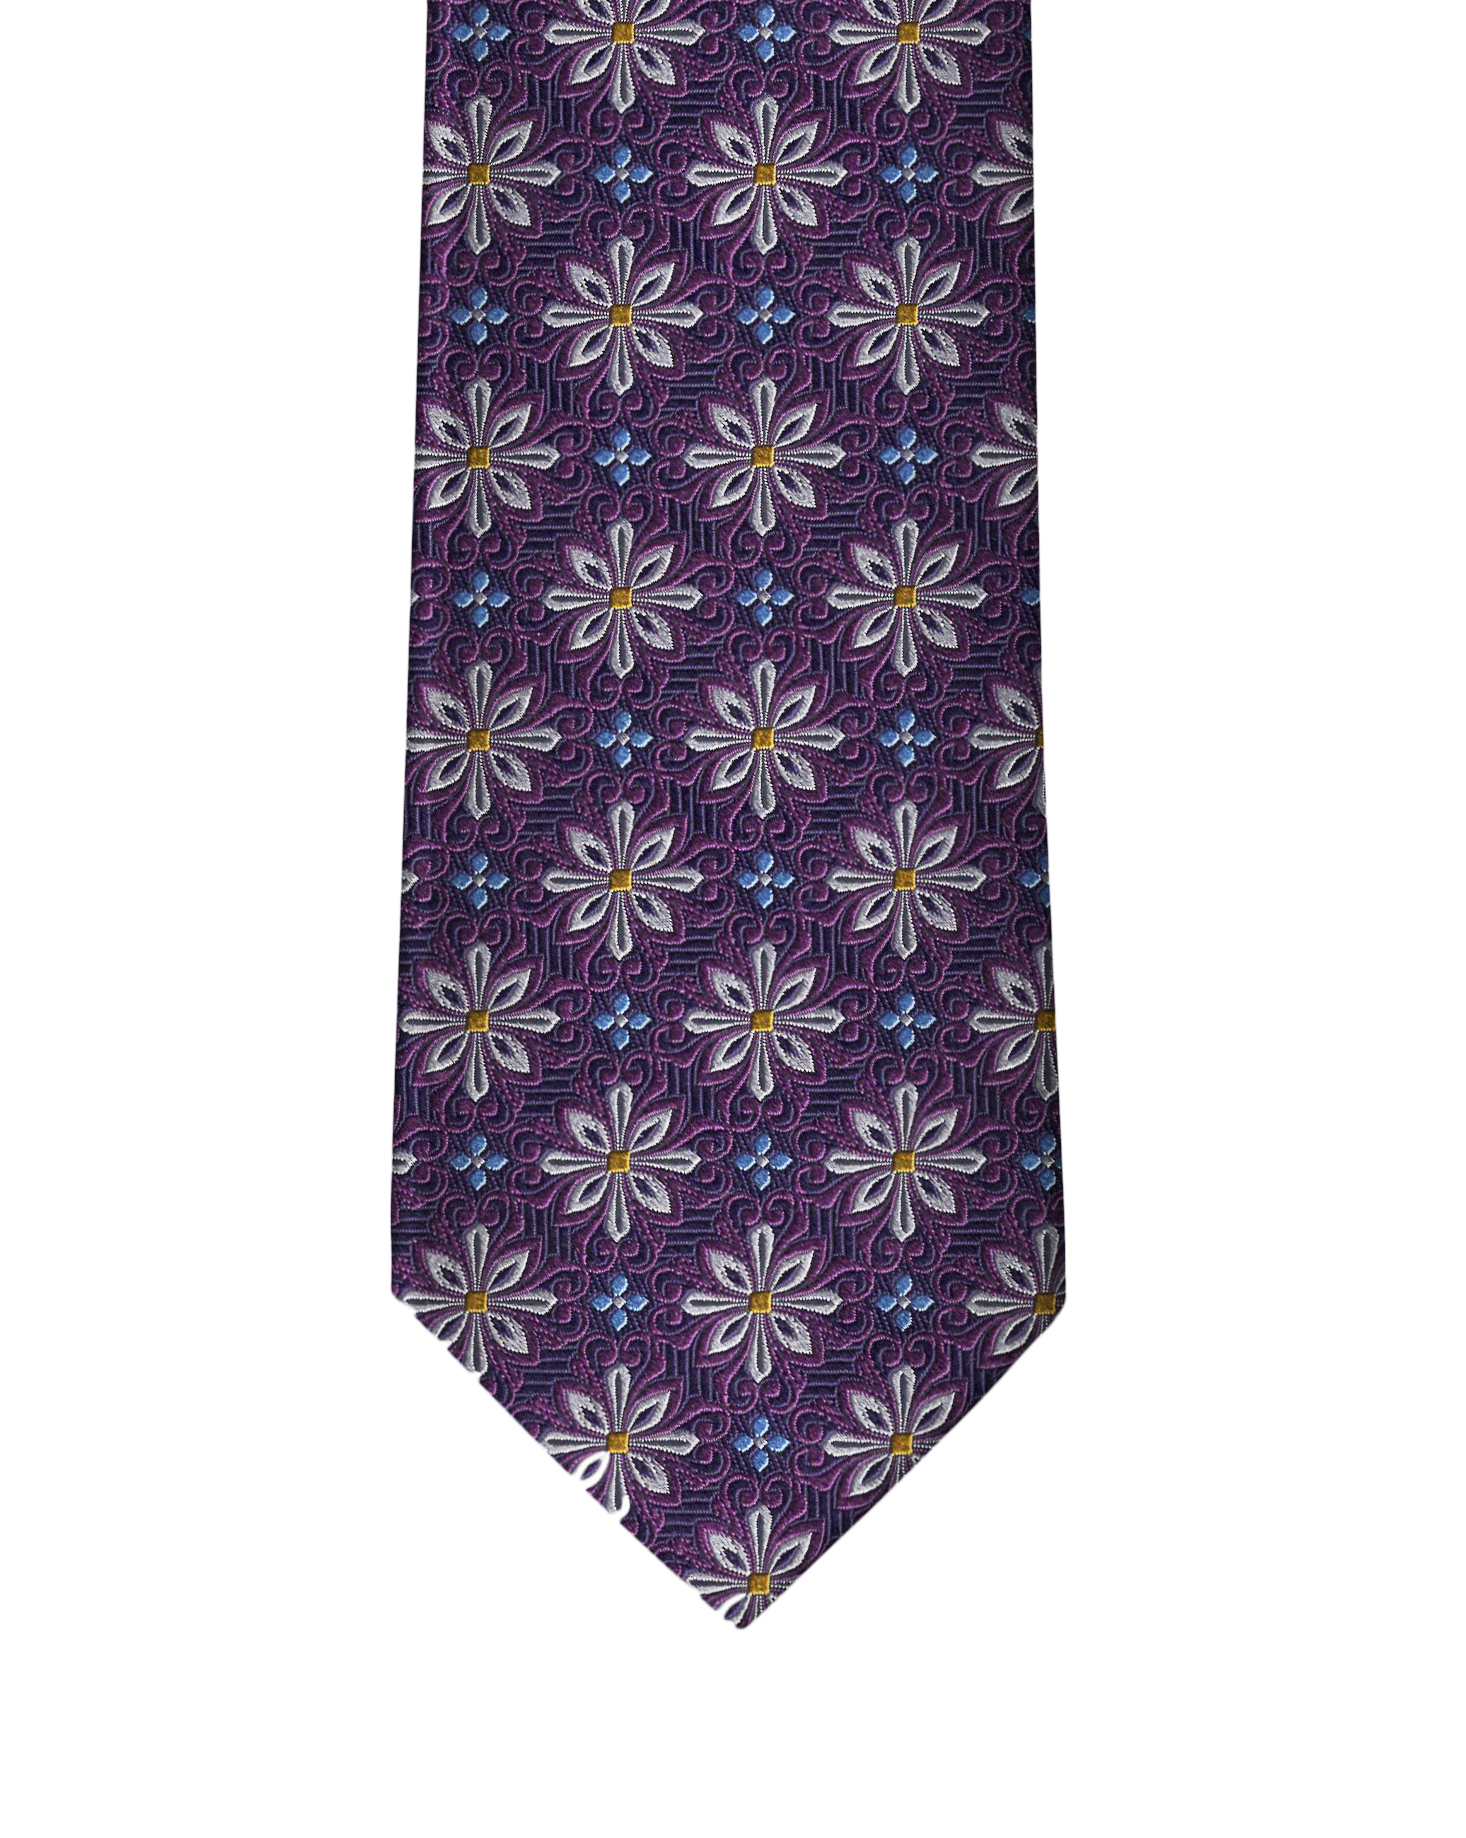 Dark Purple Medallion Necktie